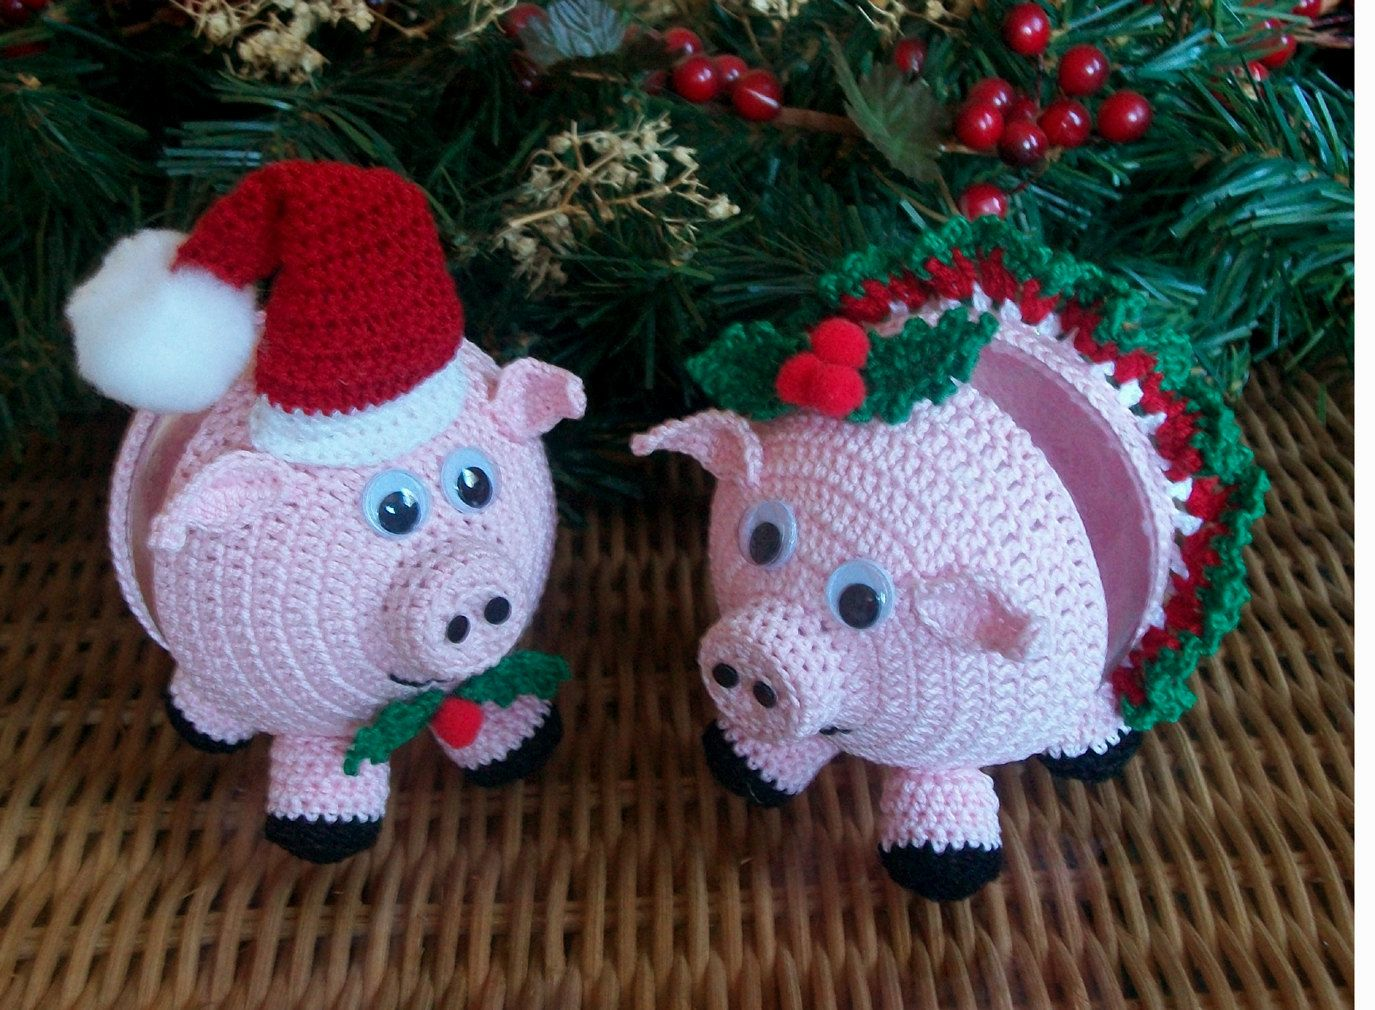 Christmas ornament covers holiday pigs crochet thread patterns pdf christmas ornament covers holiday pigs crochet thread patterns pdf bankloansurffo Gallery